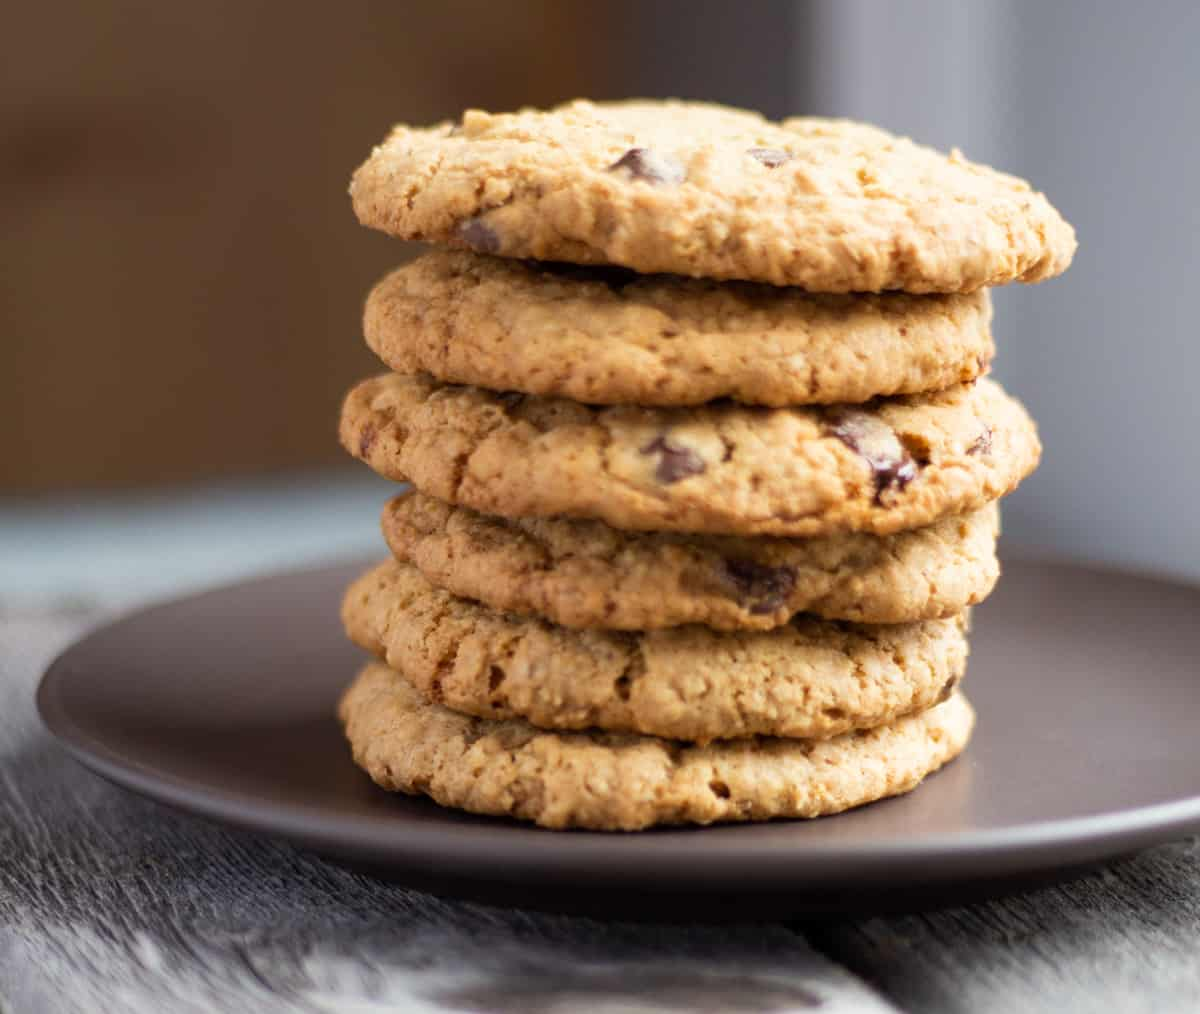 Six oatmeal chocolate chunk cookies stacked on a plate.